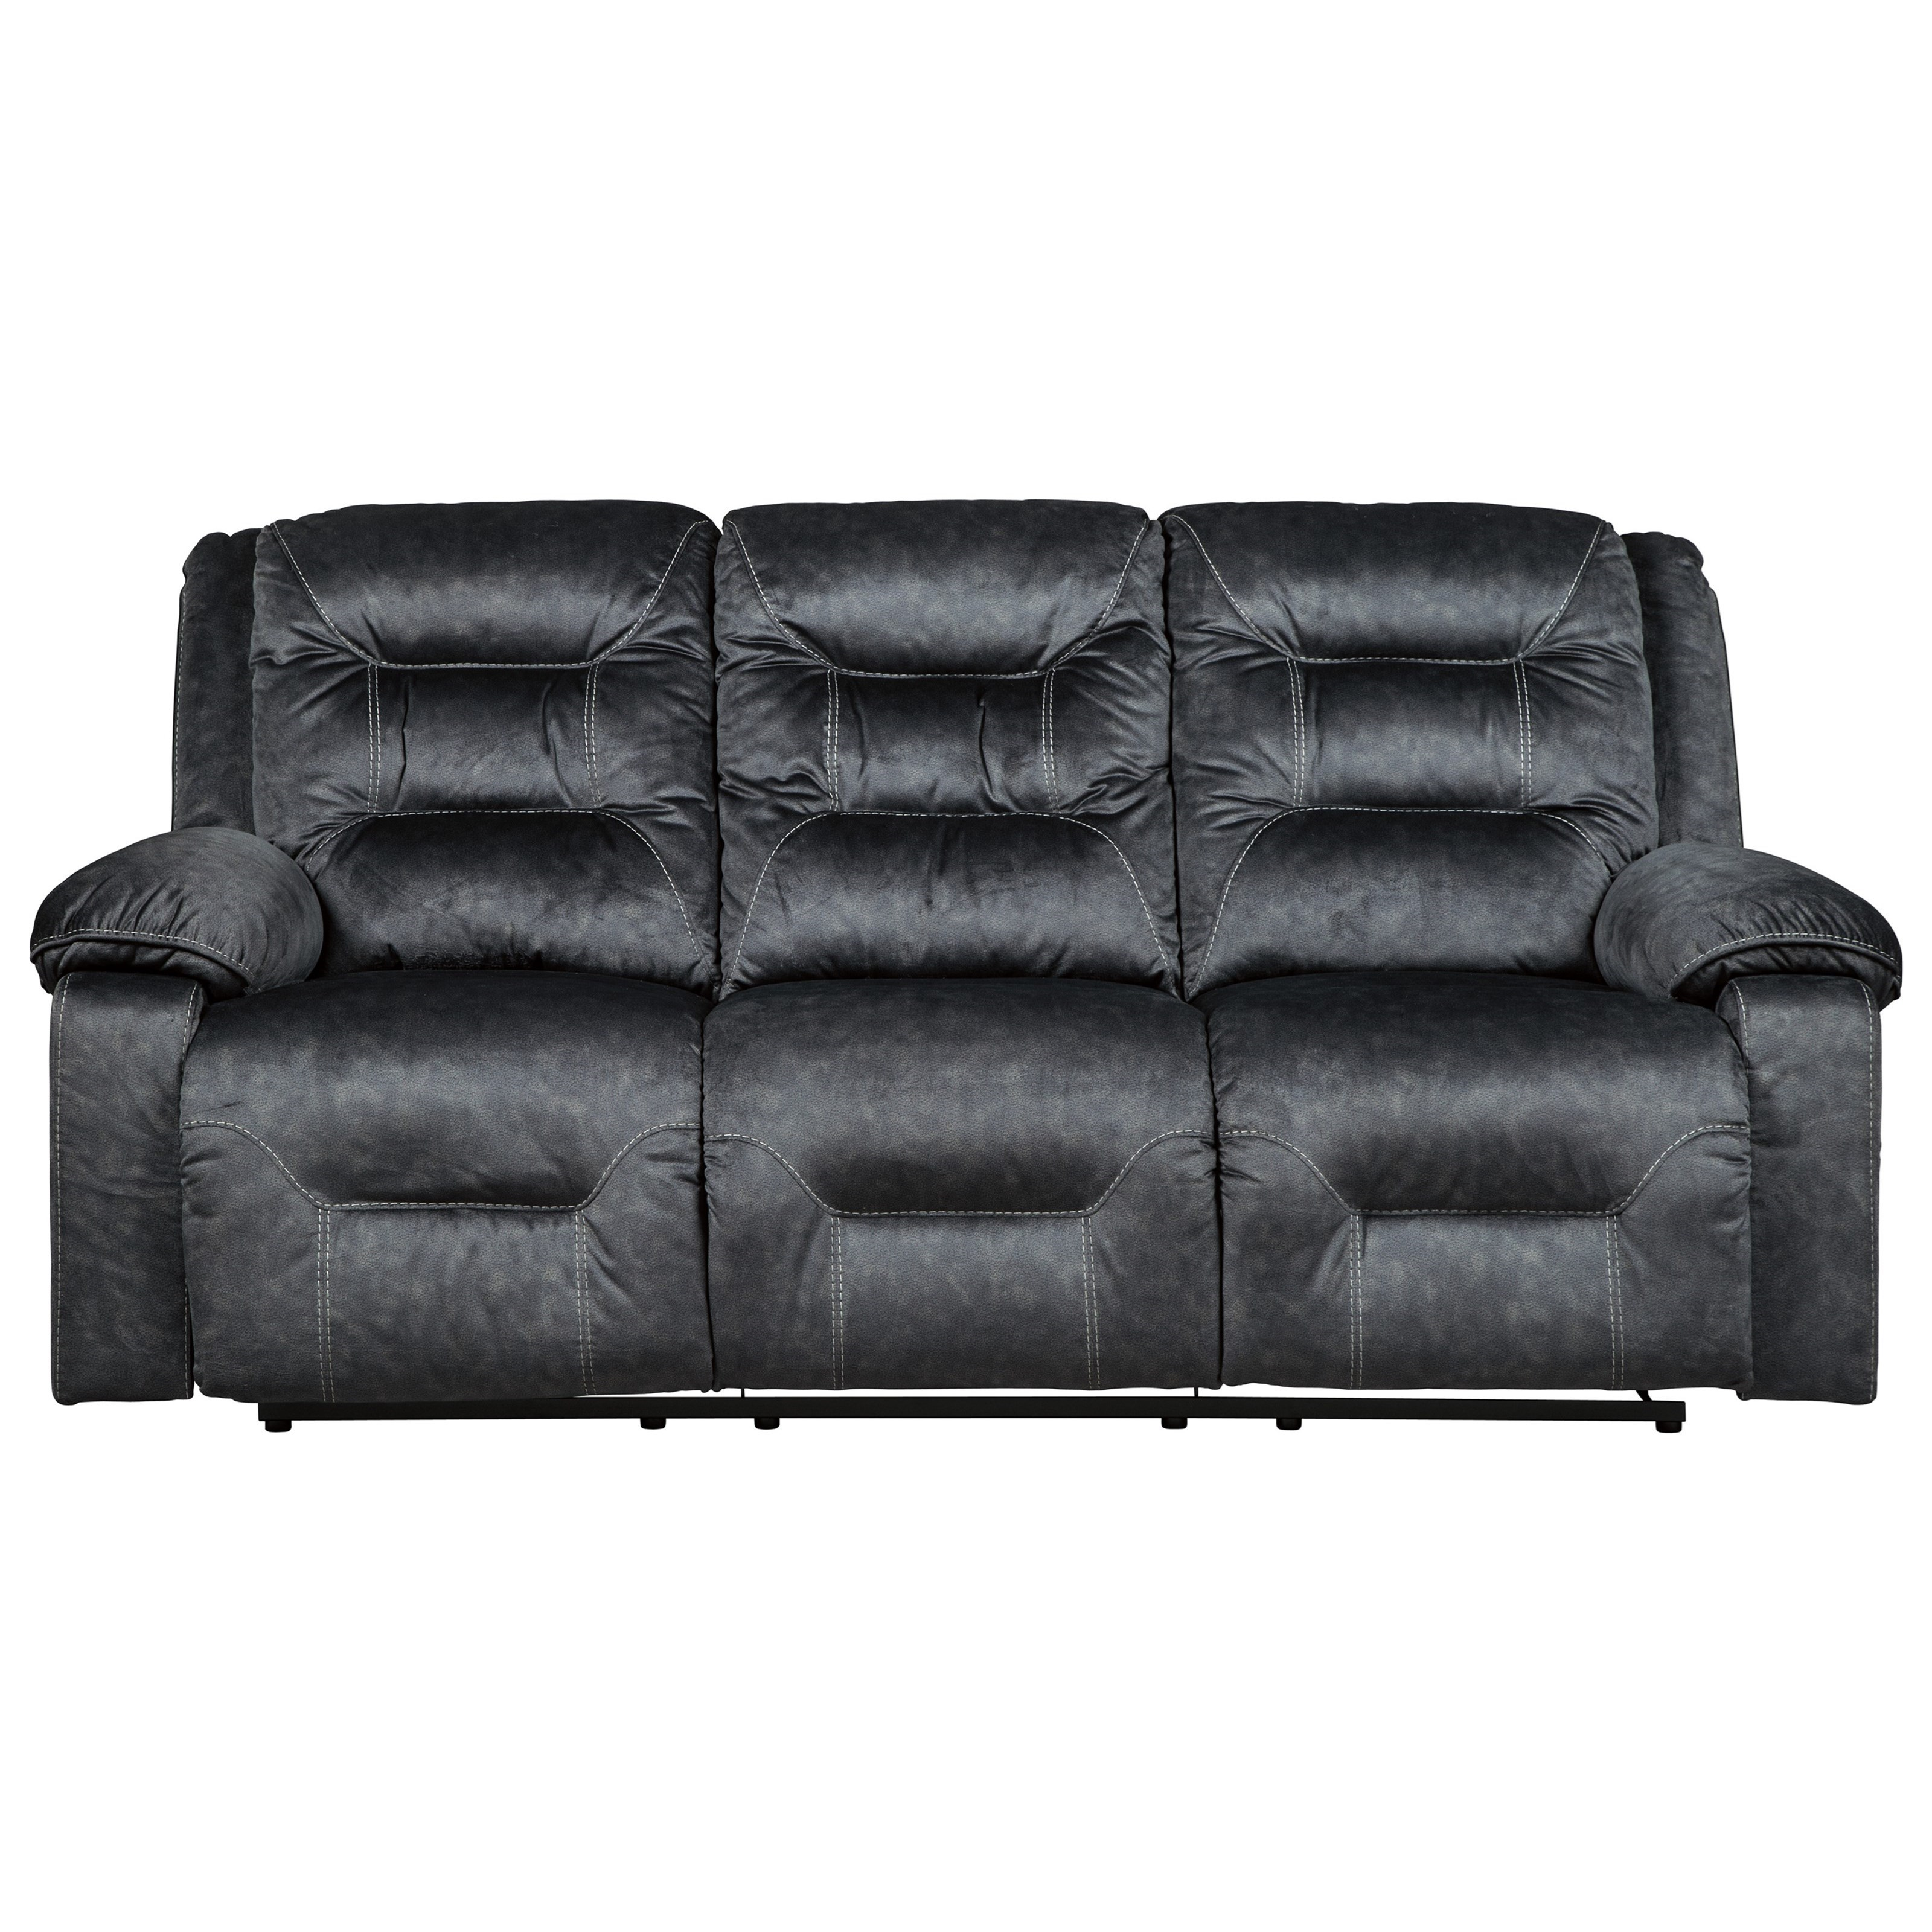 Signature Design by Ashley Waldheim Power Reclining Sofa w/ Adjustable Headrests - Item Number: 8150215